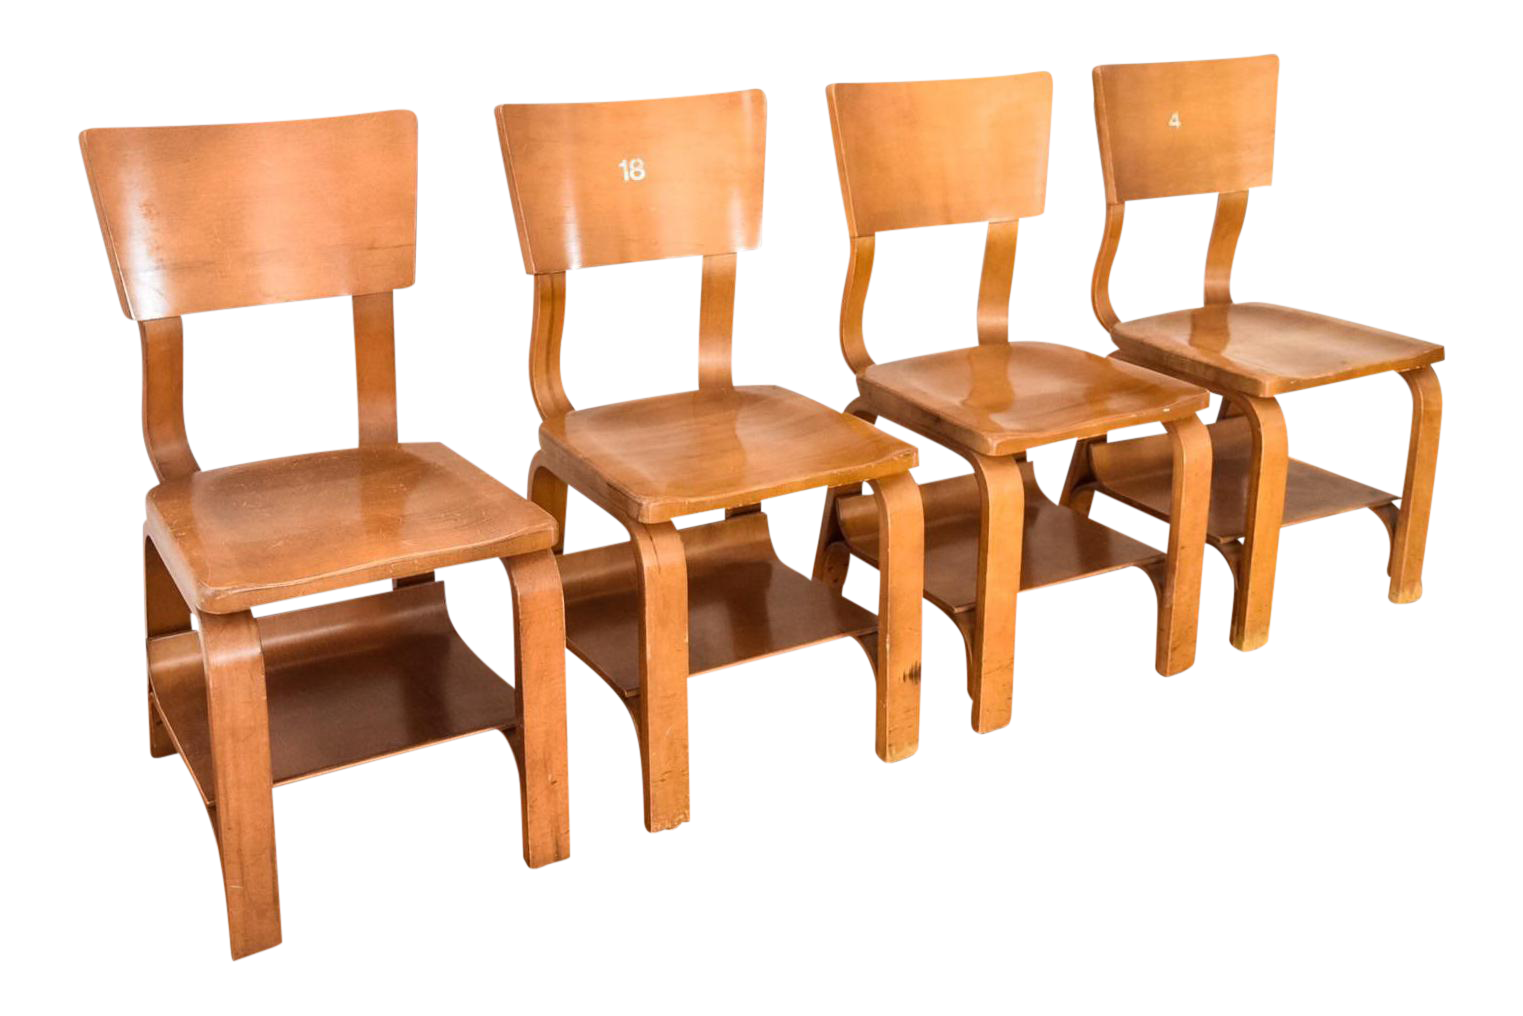 Merveilleux Thonet Mid Century Child Sized Bentwood Chairs   Set Of 4